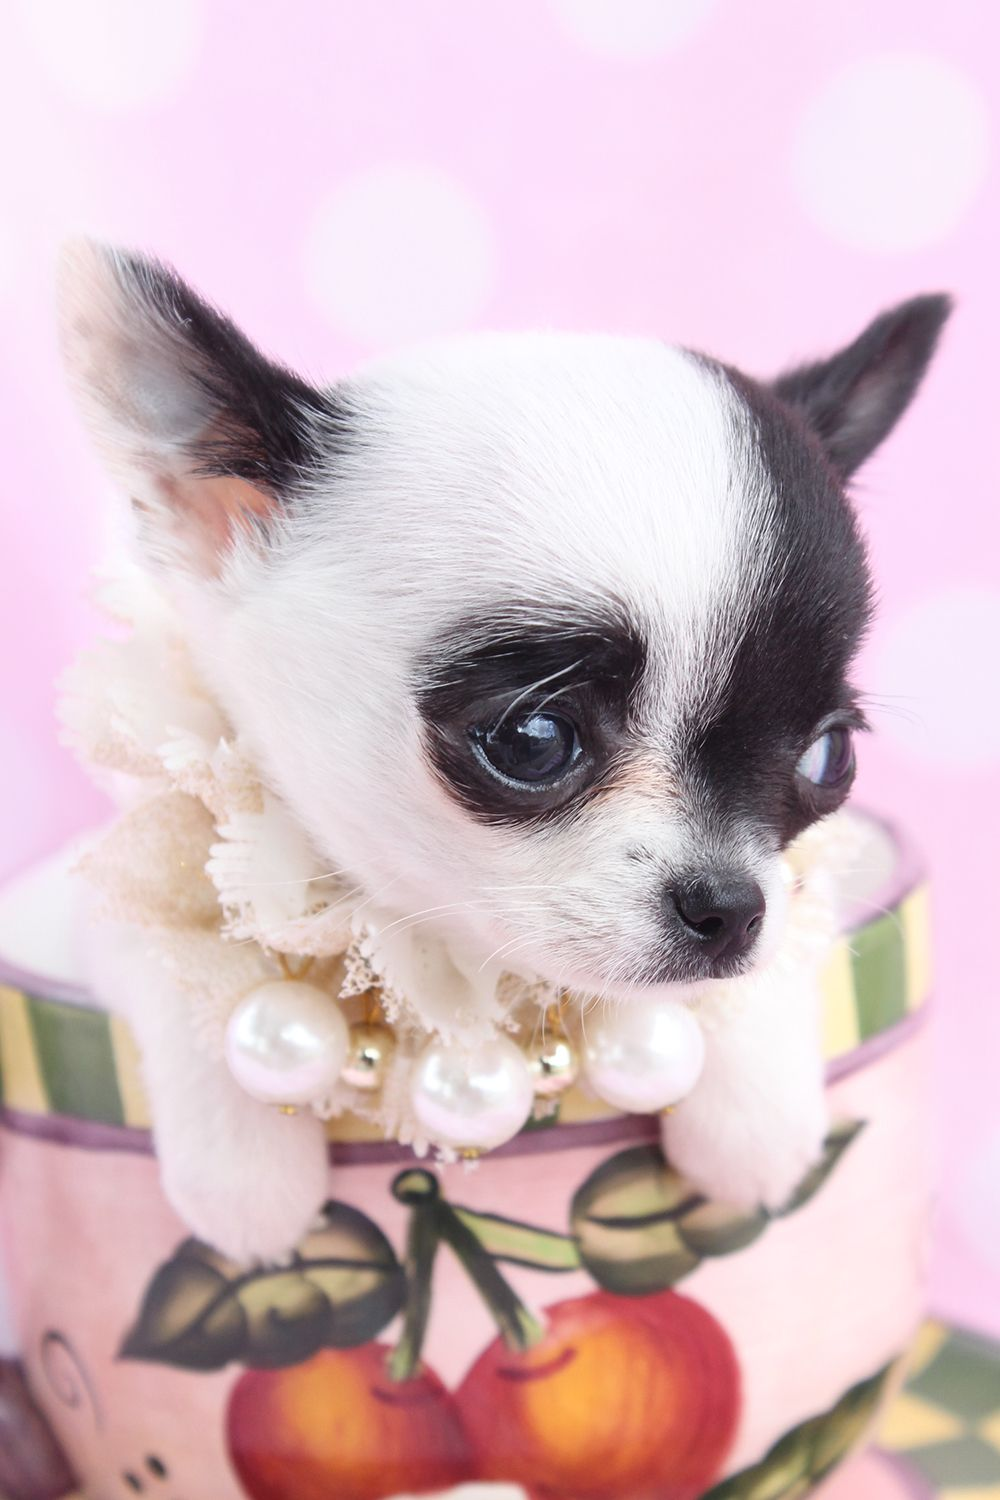 Chihuahua Minus The Pearls And Cup Placement And This Pic Would